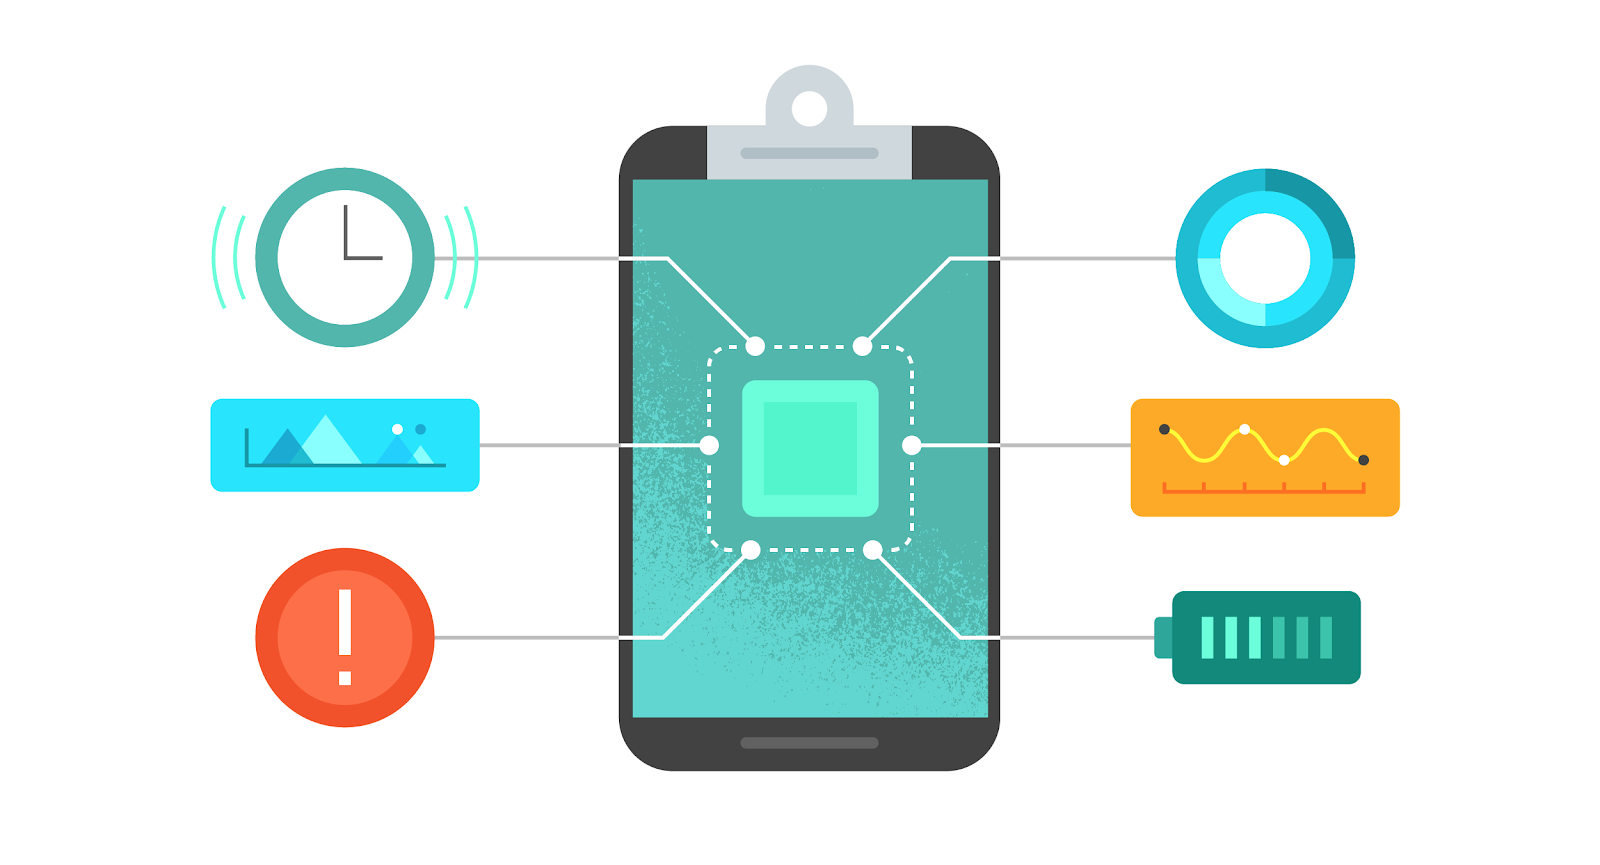 How To Fix App Quality Issues With Android Vitals Google Play Apps Project Report Of Cell Phone Detector Circuit For An Developer There Is No Better Measure Success Than Happy Users And Preferably A Lot Them The Best Way Achieve This Have Great